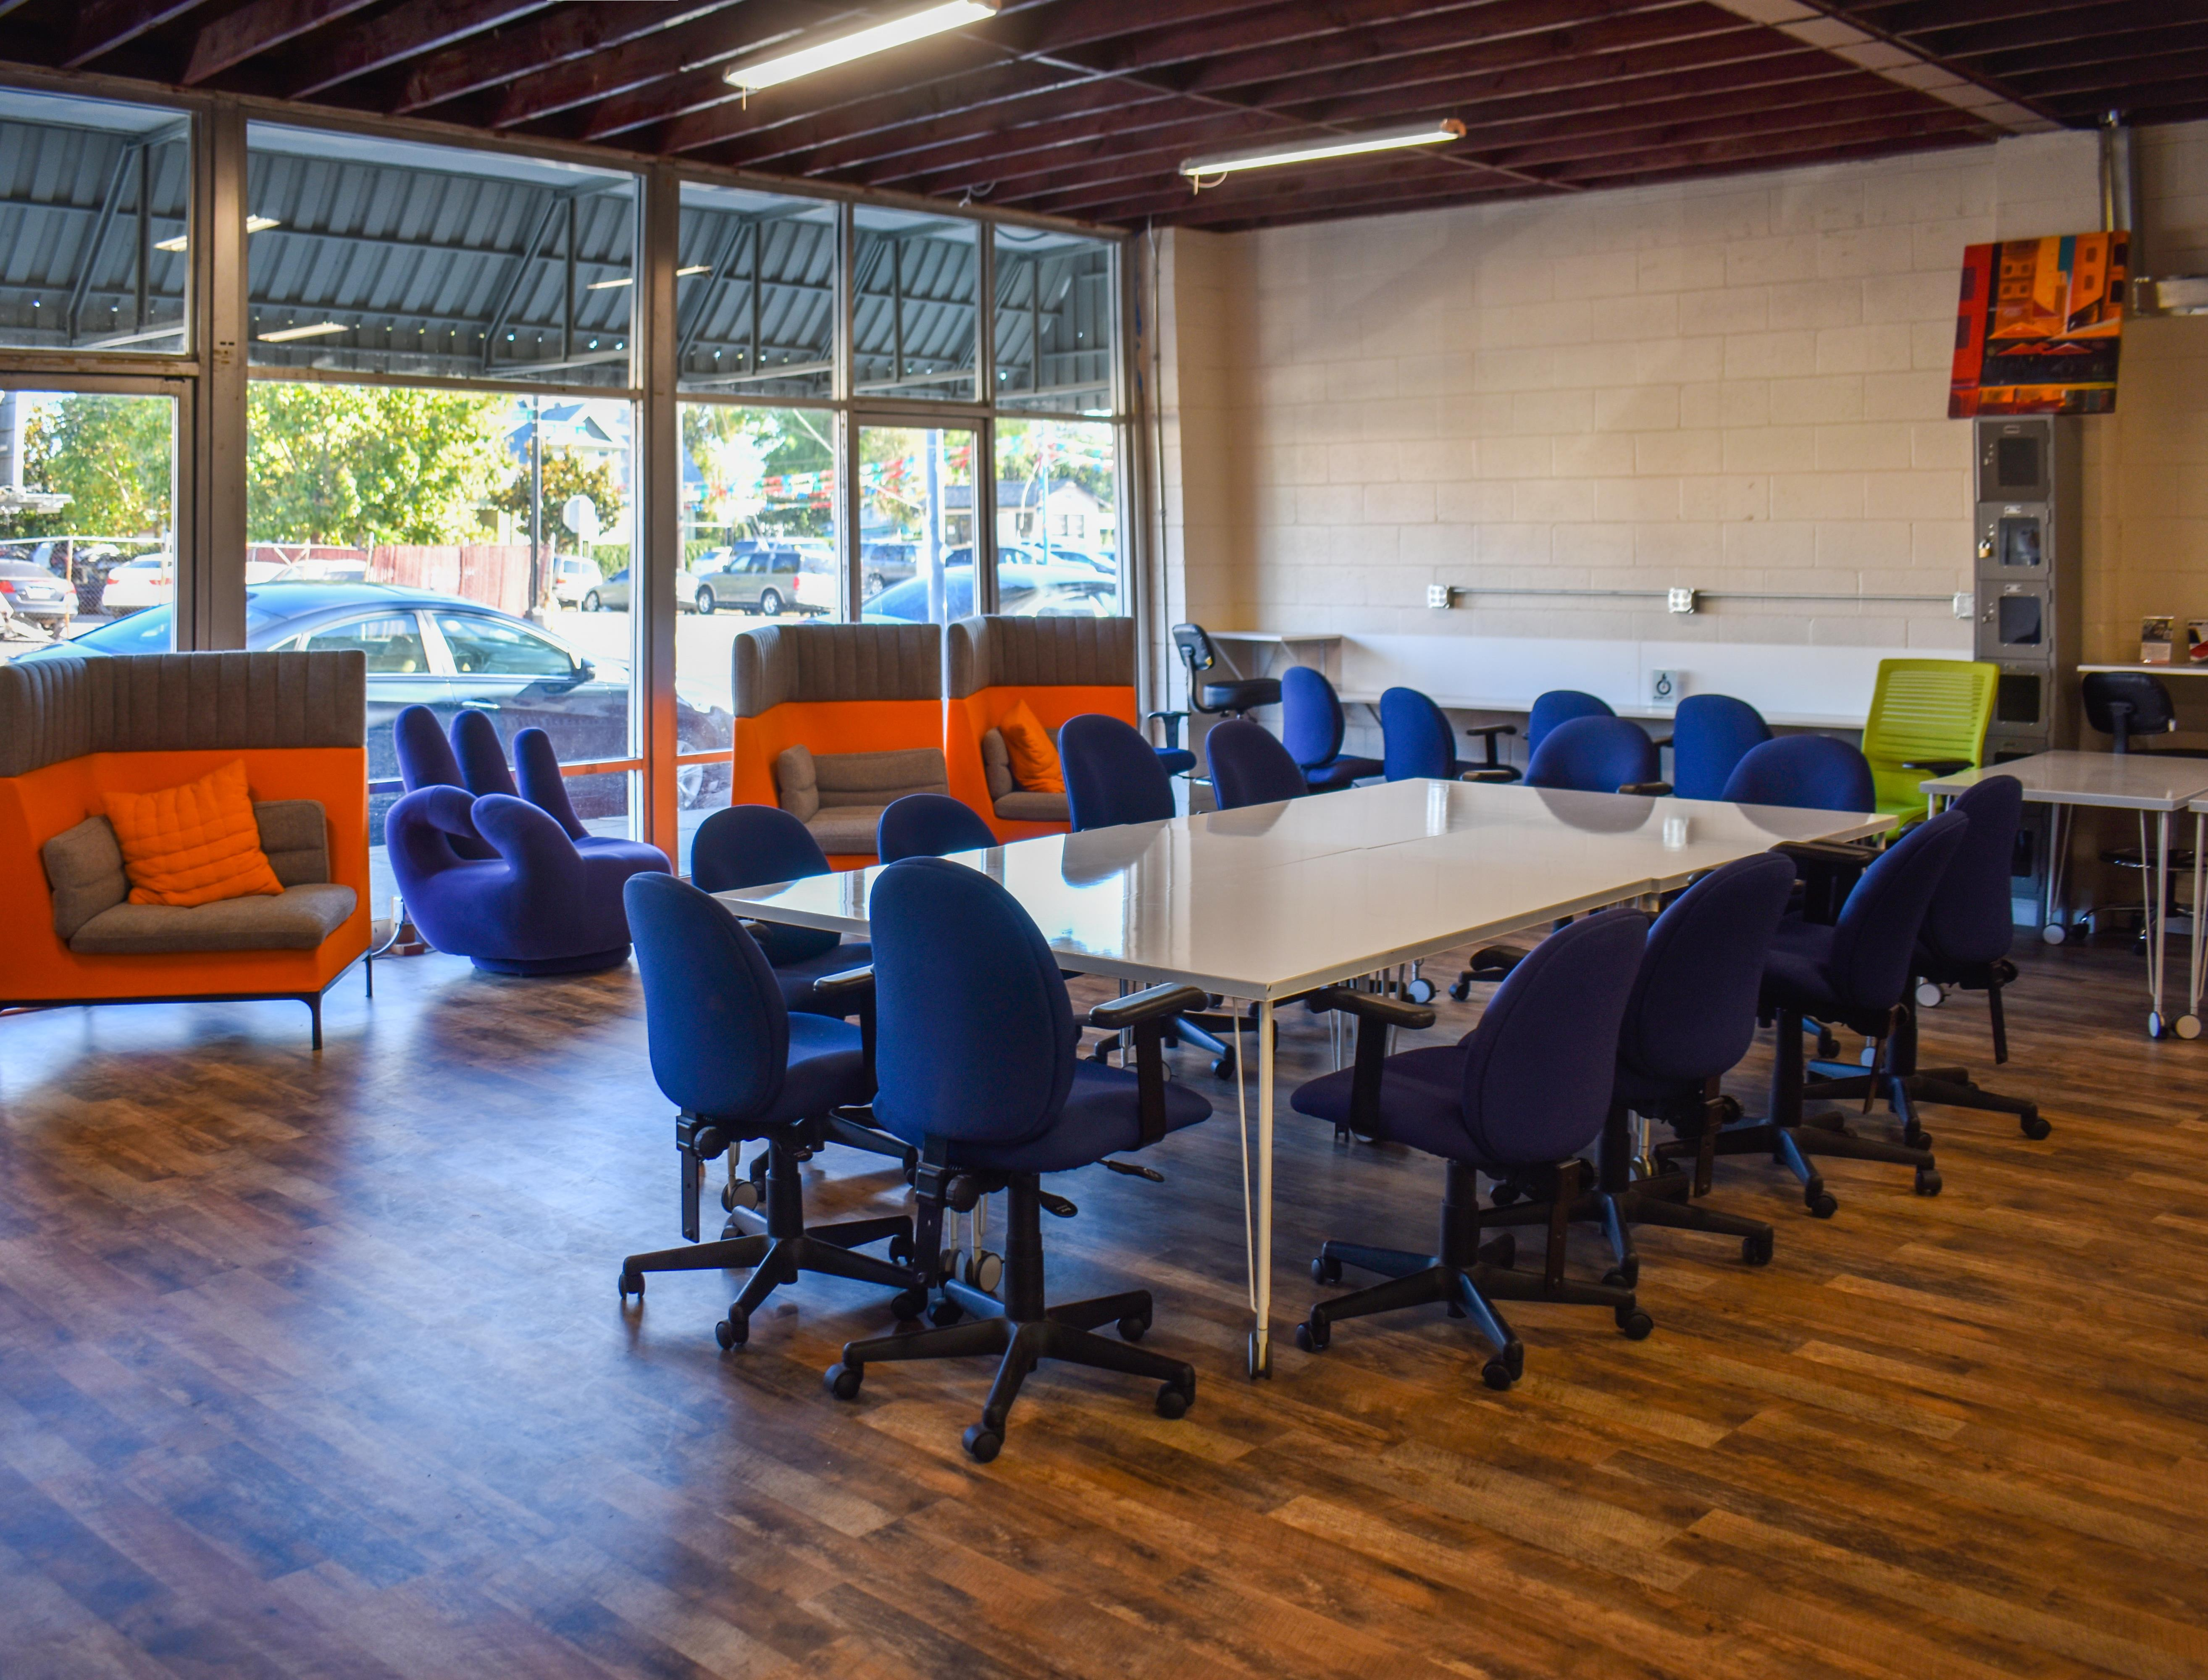 ActionSpot Co-working /Shared Office Space - Meeting Room - Open Floor Space